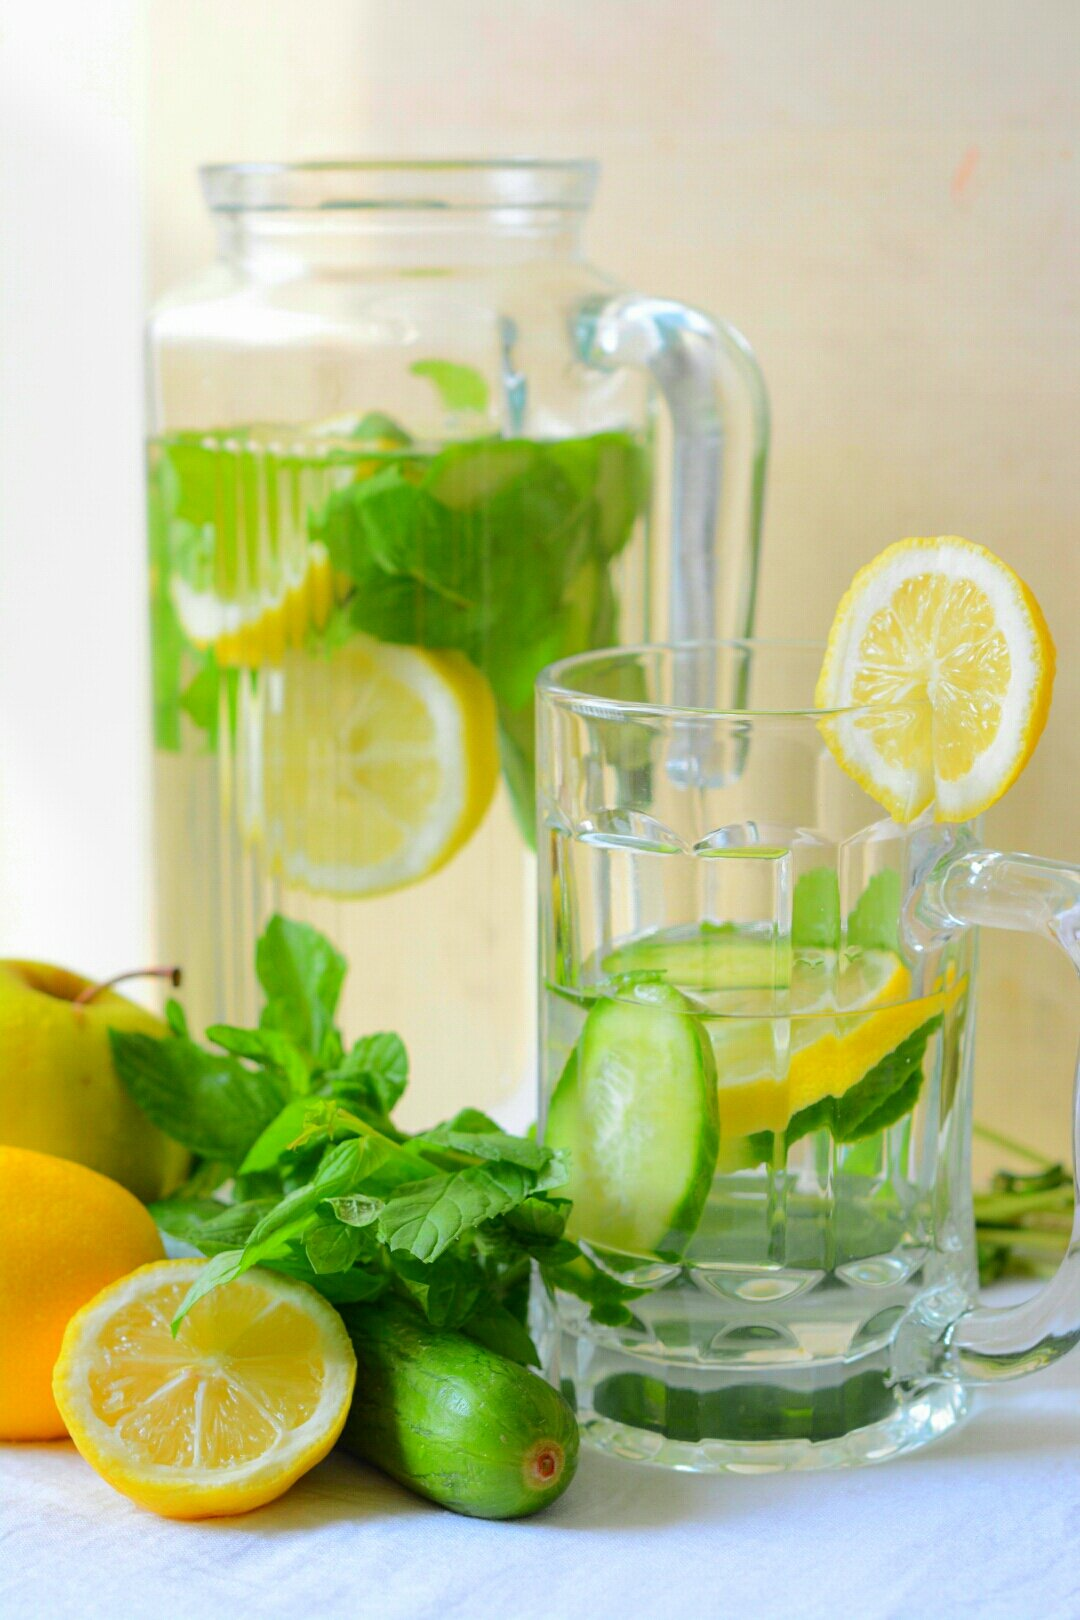 Detox water is any infused water recipe that helps flush your system of toxins and improves your health. Some detox water recipes have beneficial ingredients which help your body in some ways (like boost metabolism), but the main beneficial ingredient is water.